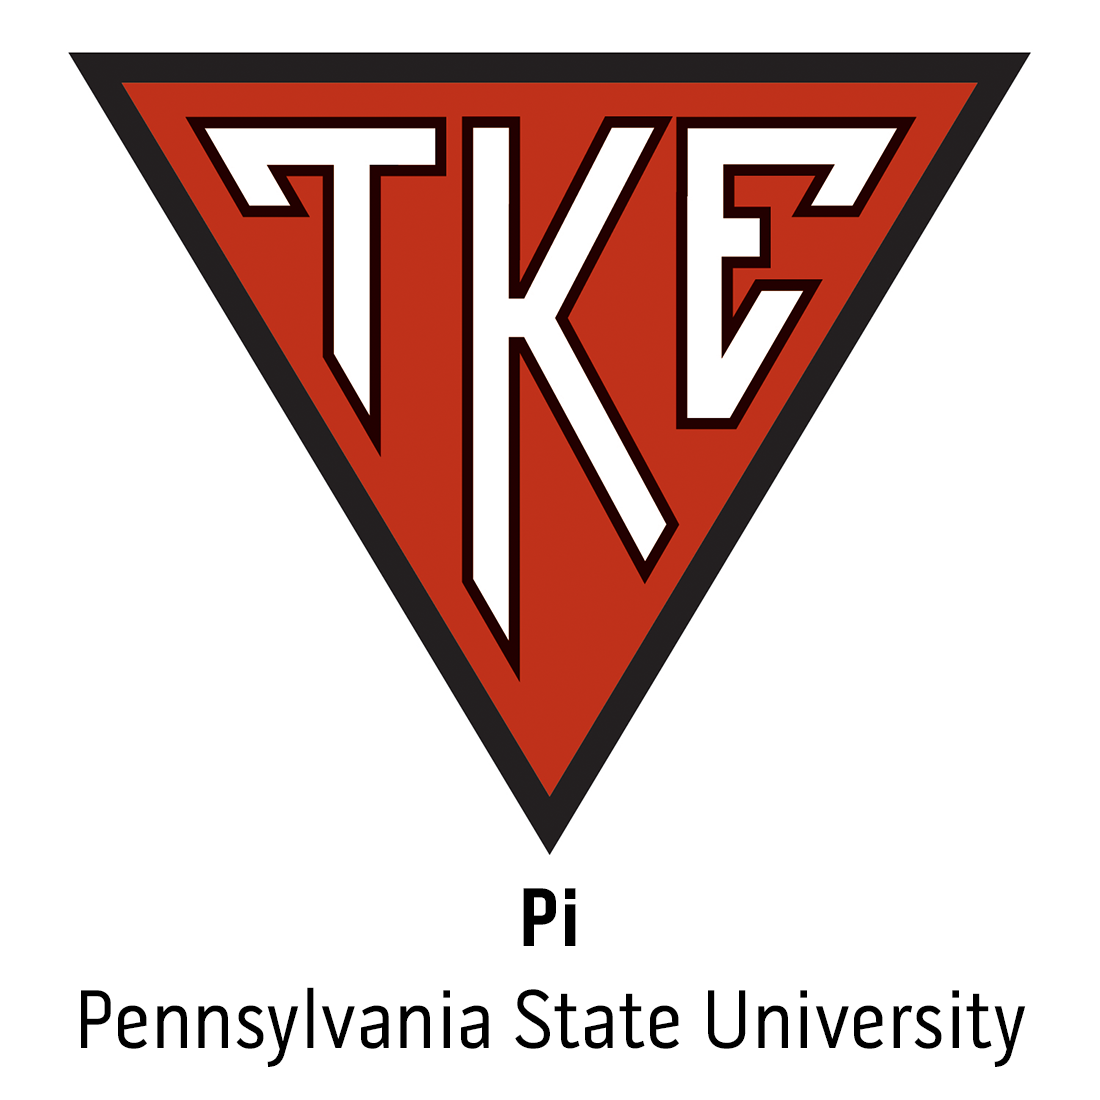 Pi Chapter at Pennsylvania State University